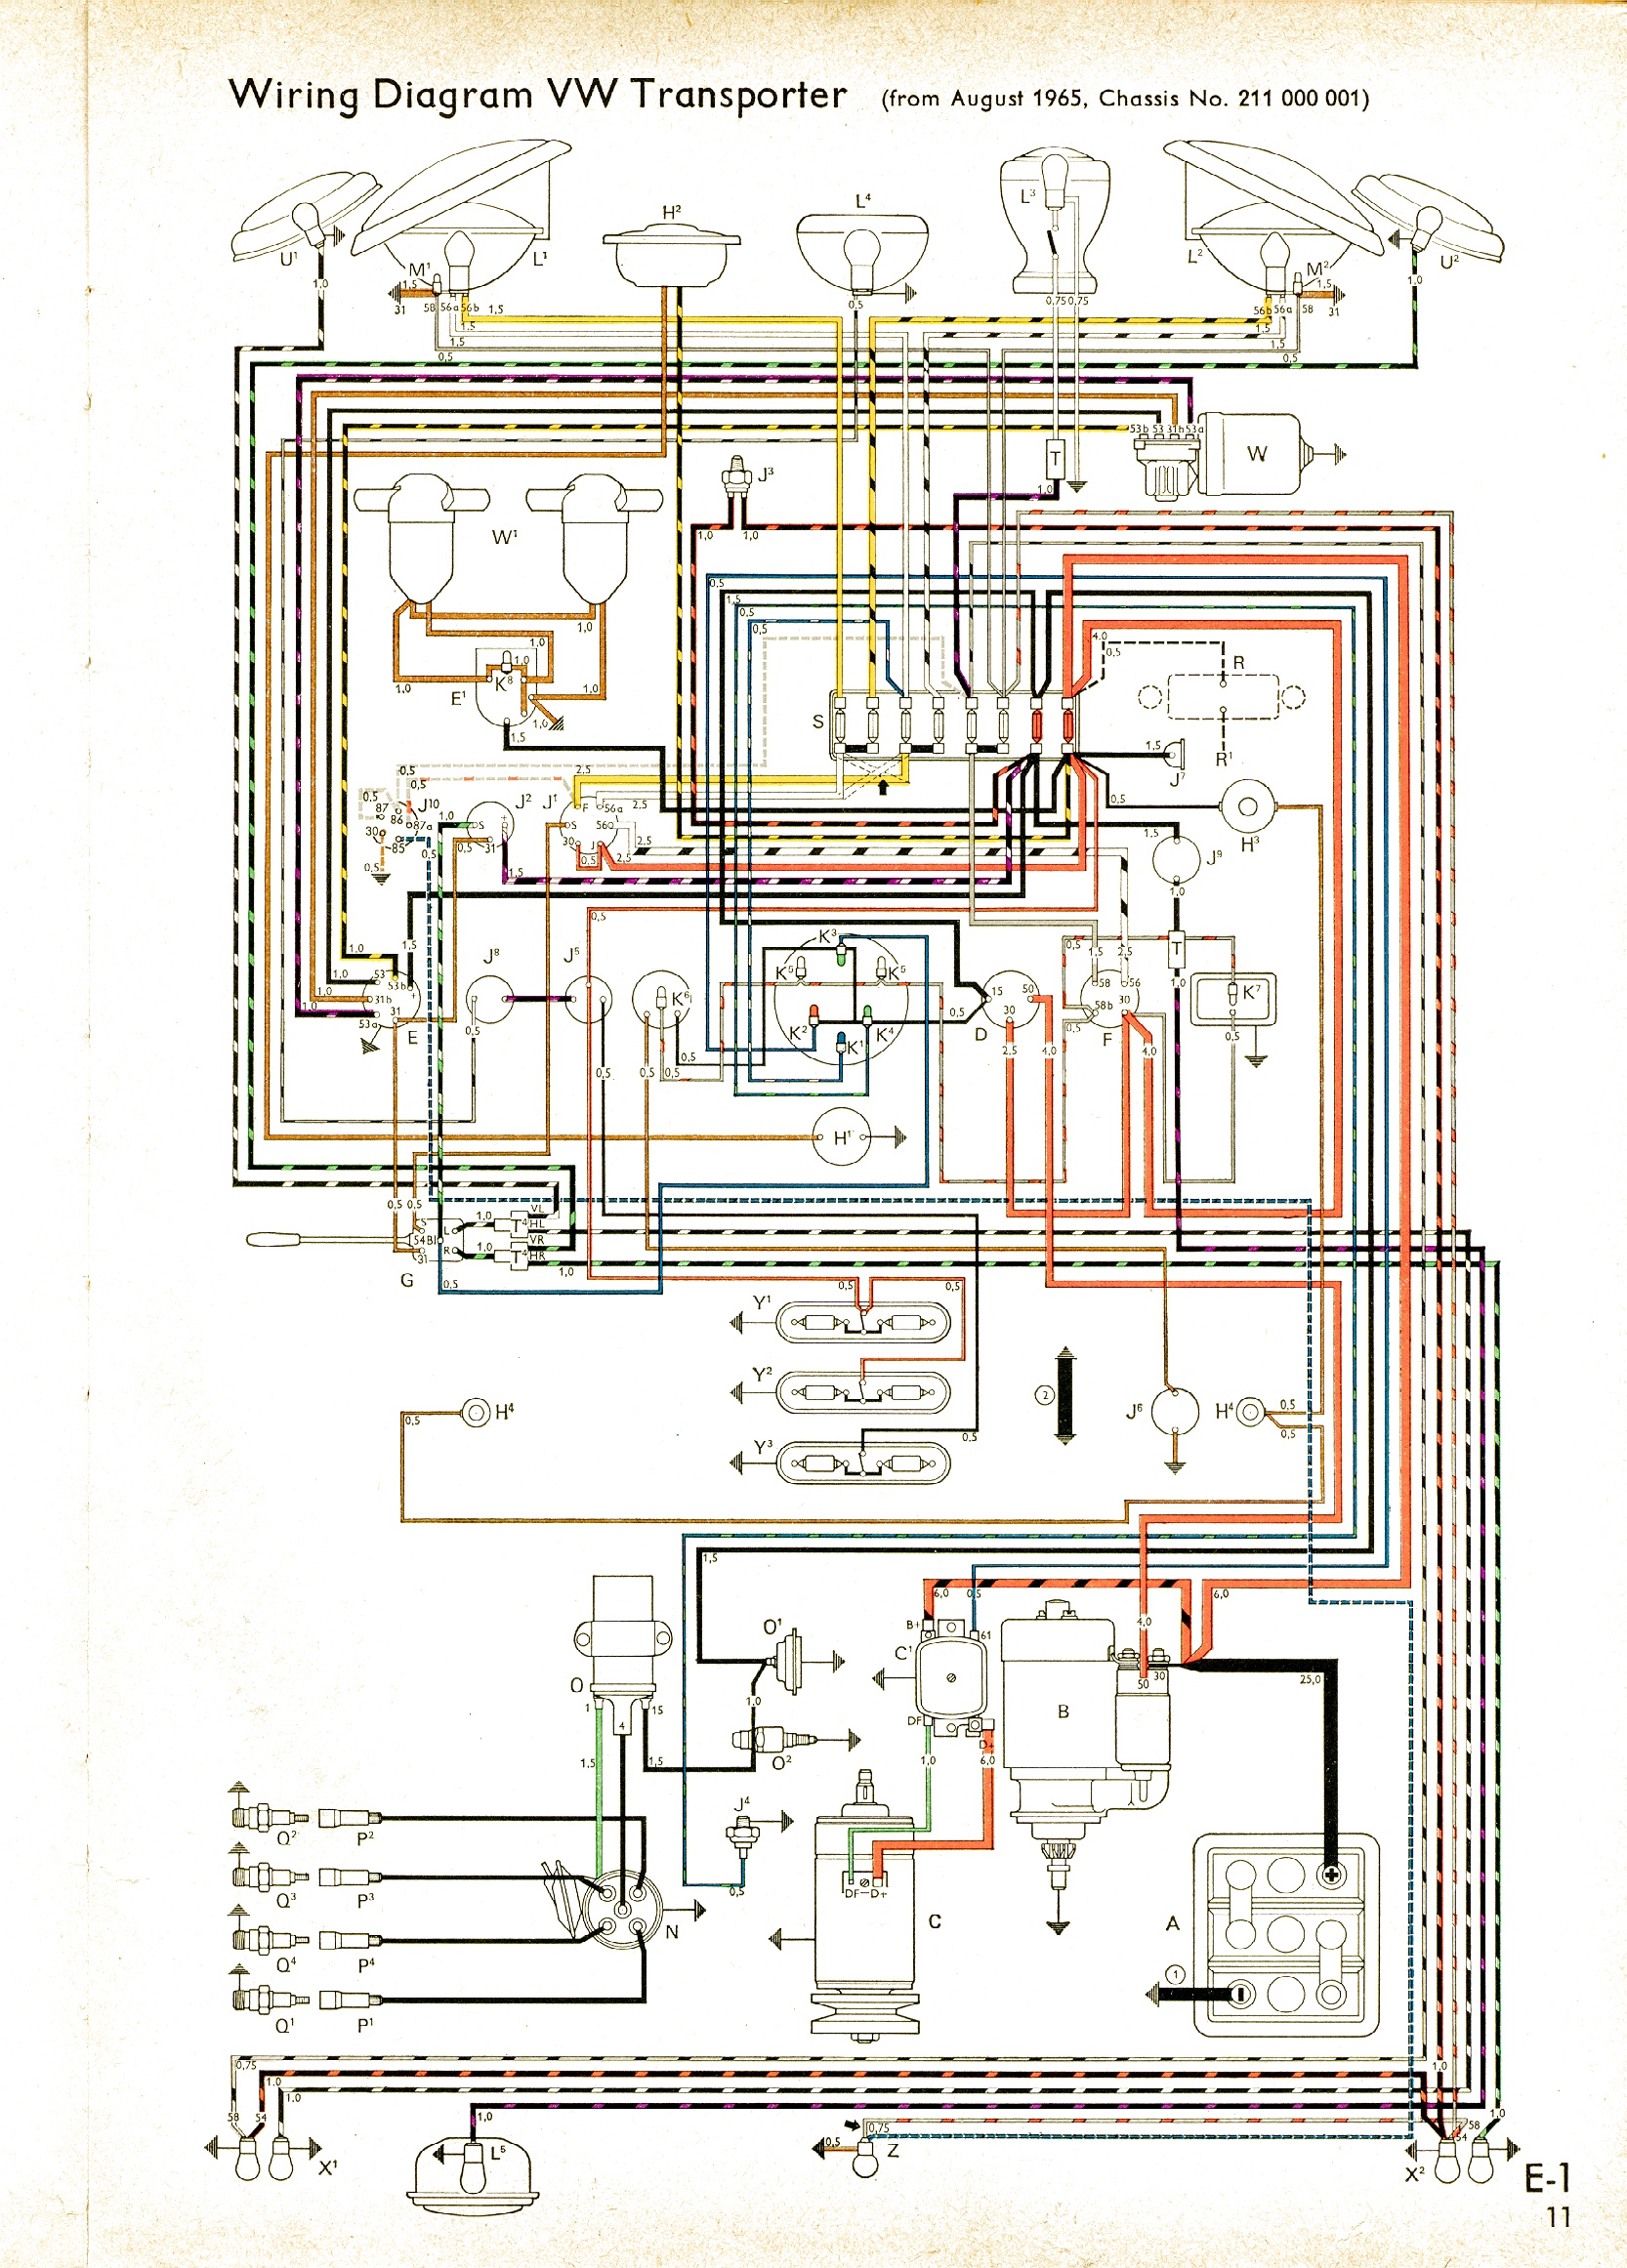 bus 65 bus wiring diagram vw wiring harness diagram \u2022 wiring diagrams j 1971 vw bus wiring diagram at mr168.co